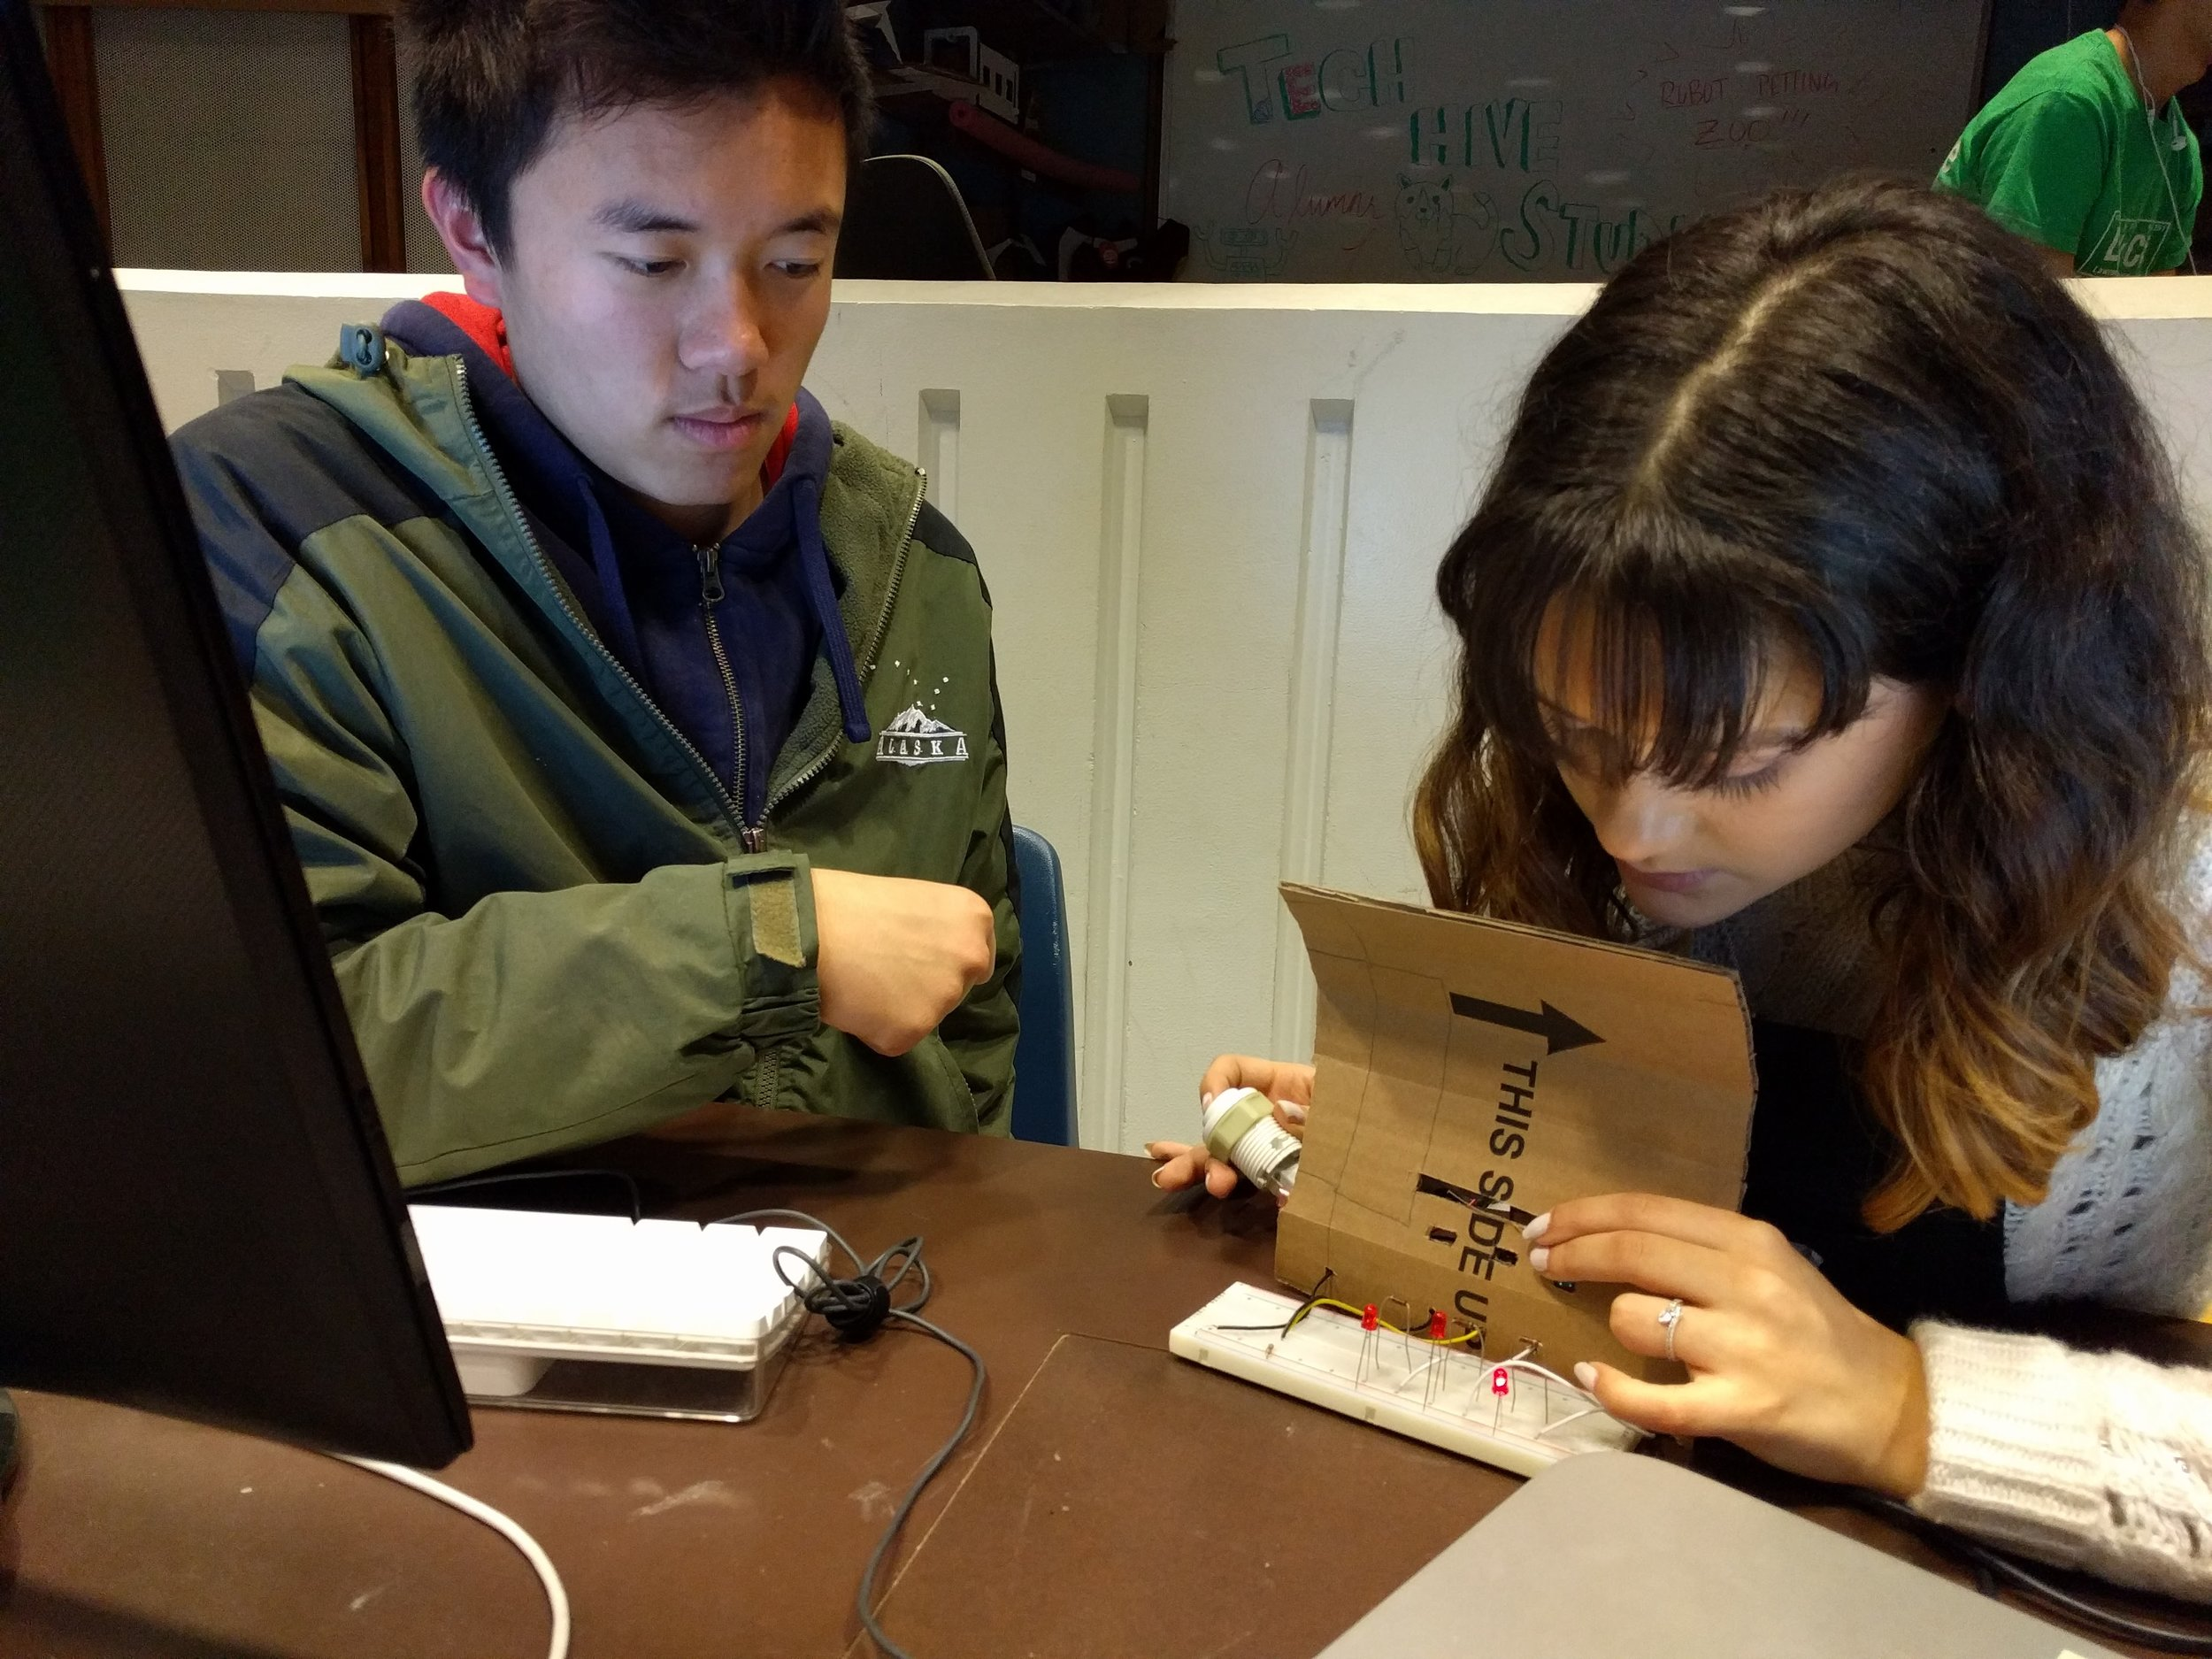 Marie and Edmond building the first iteration of their Status Prism.